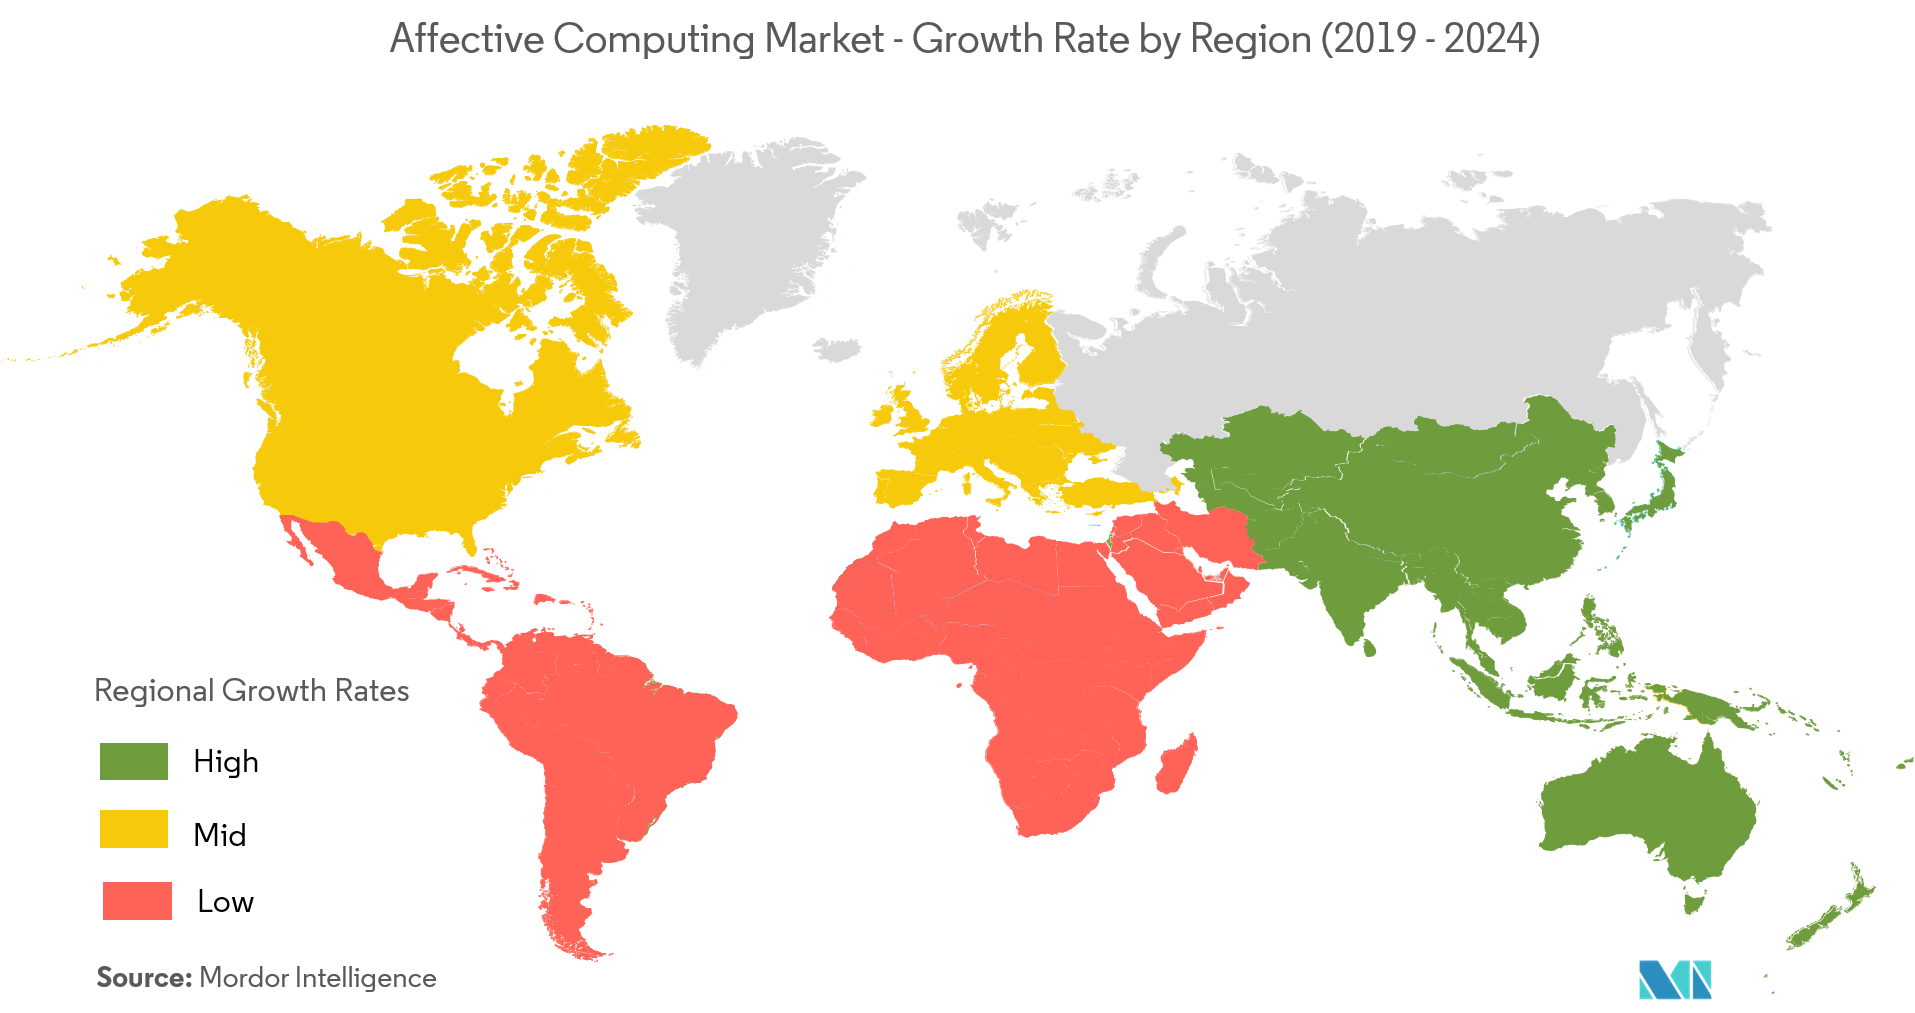 Affective Computing Market Growth by Region